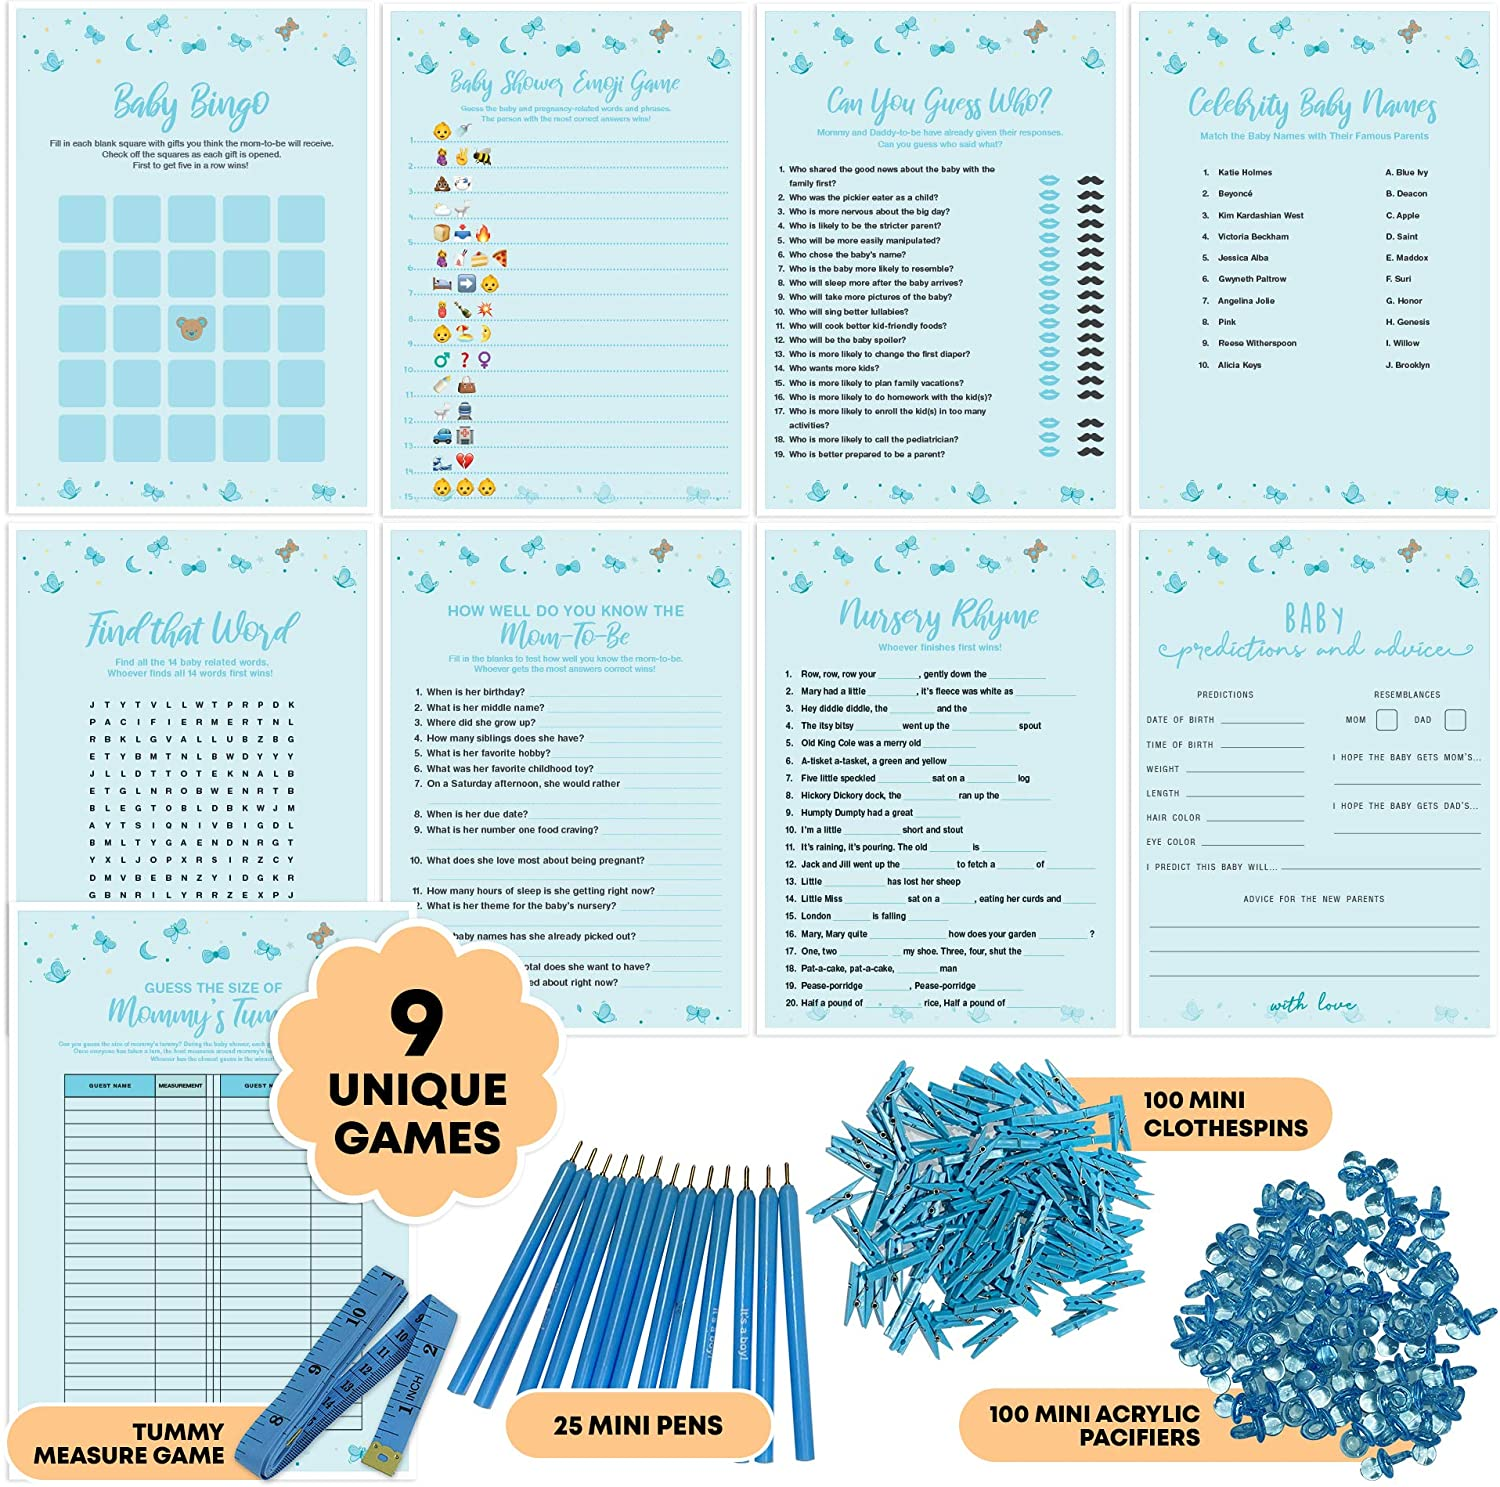 Dessie Baby Shower Games for Boys - Ultimate Boy Baby Shower Set | Includes 9 Unique Games, 25 Pens and Baby Boy Shower Decorations (100 Mini Clothespins +100 Mini Acrylic Pacifiers)